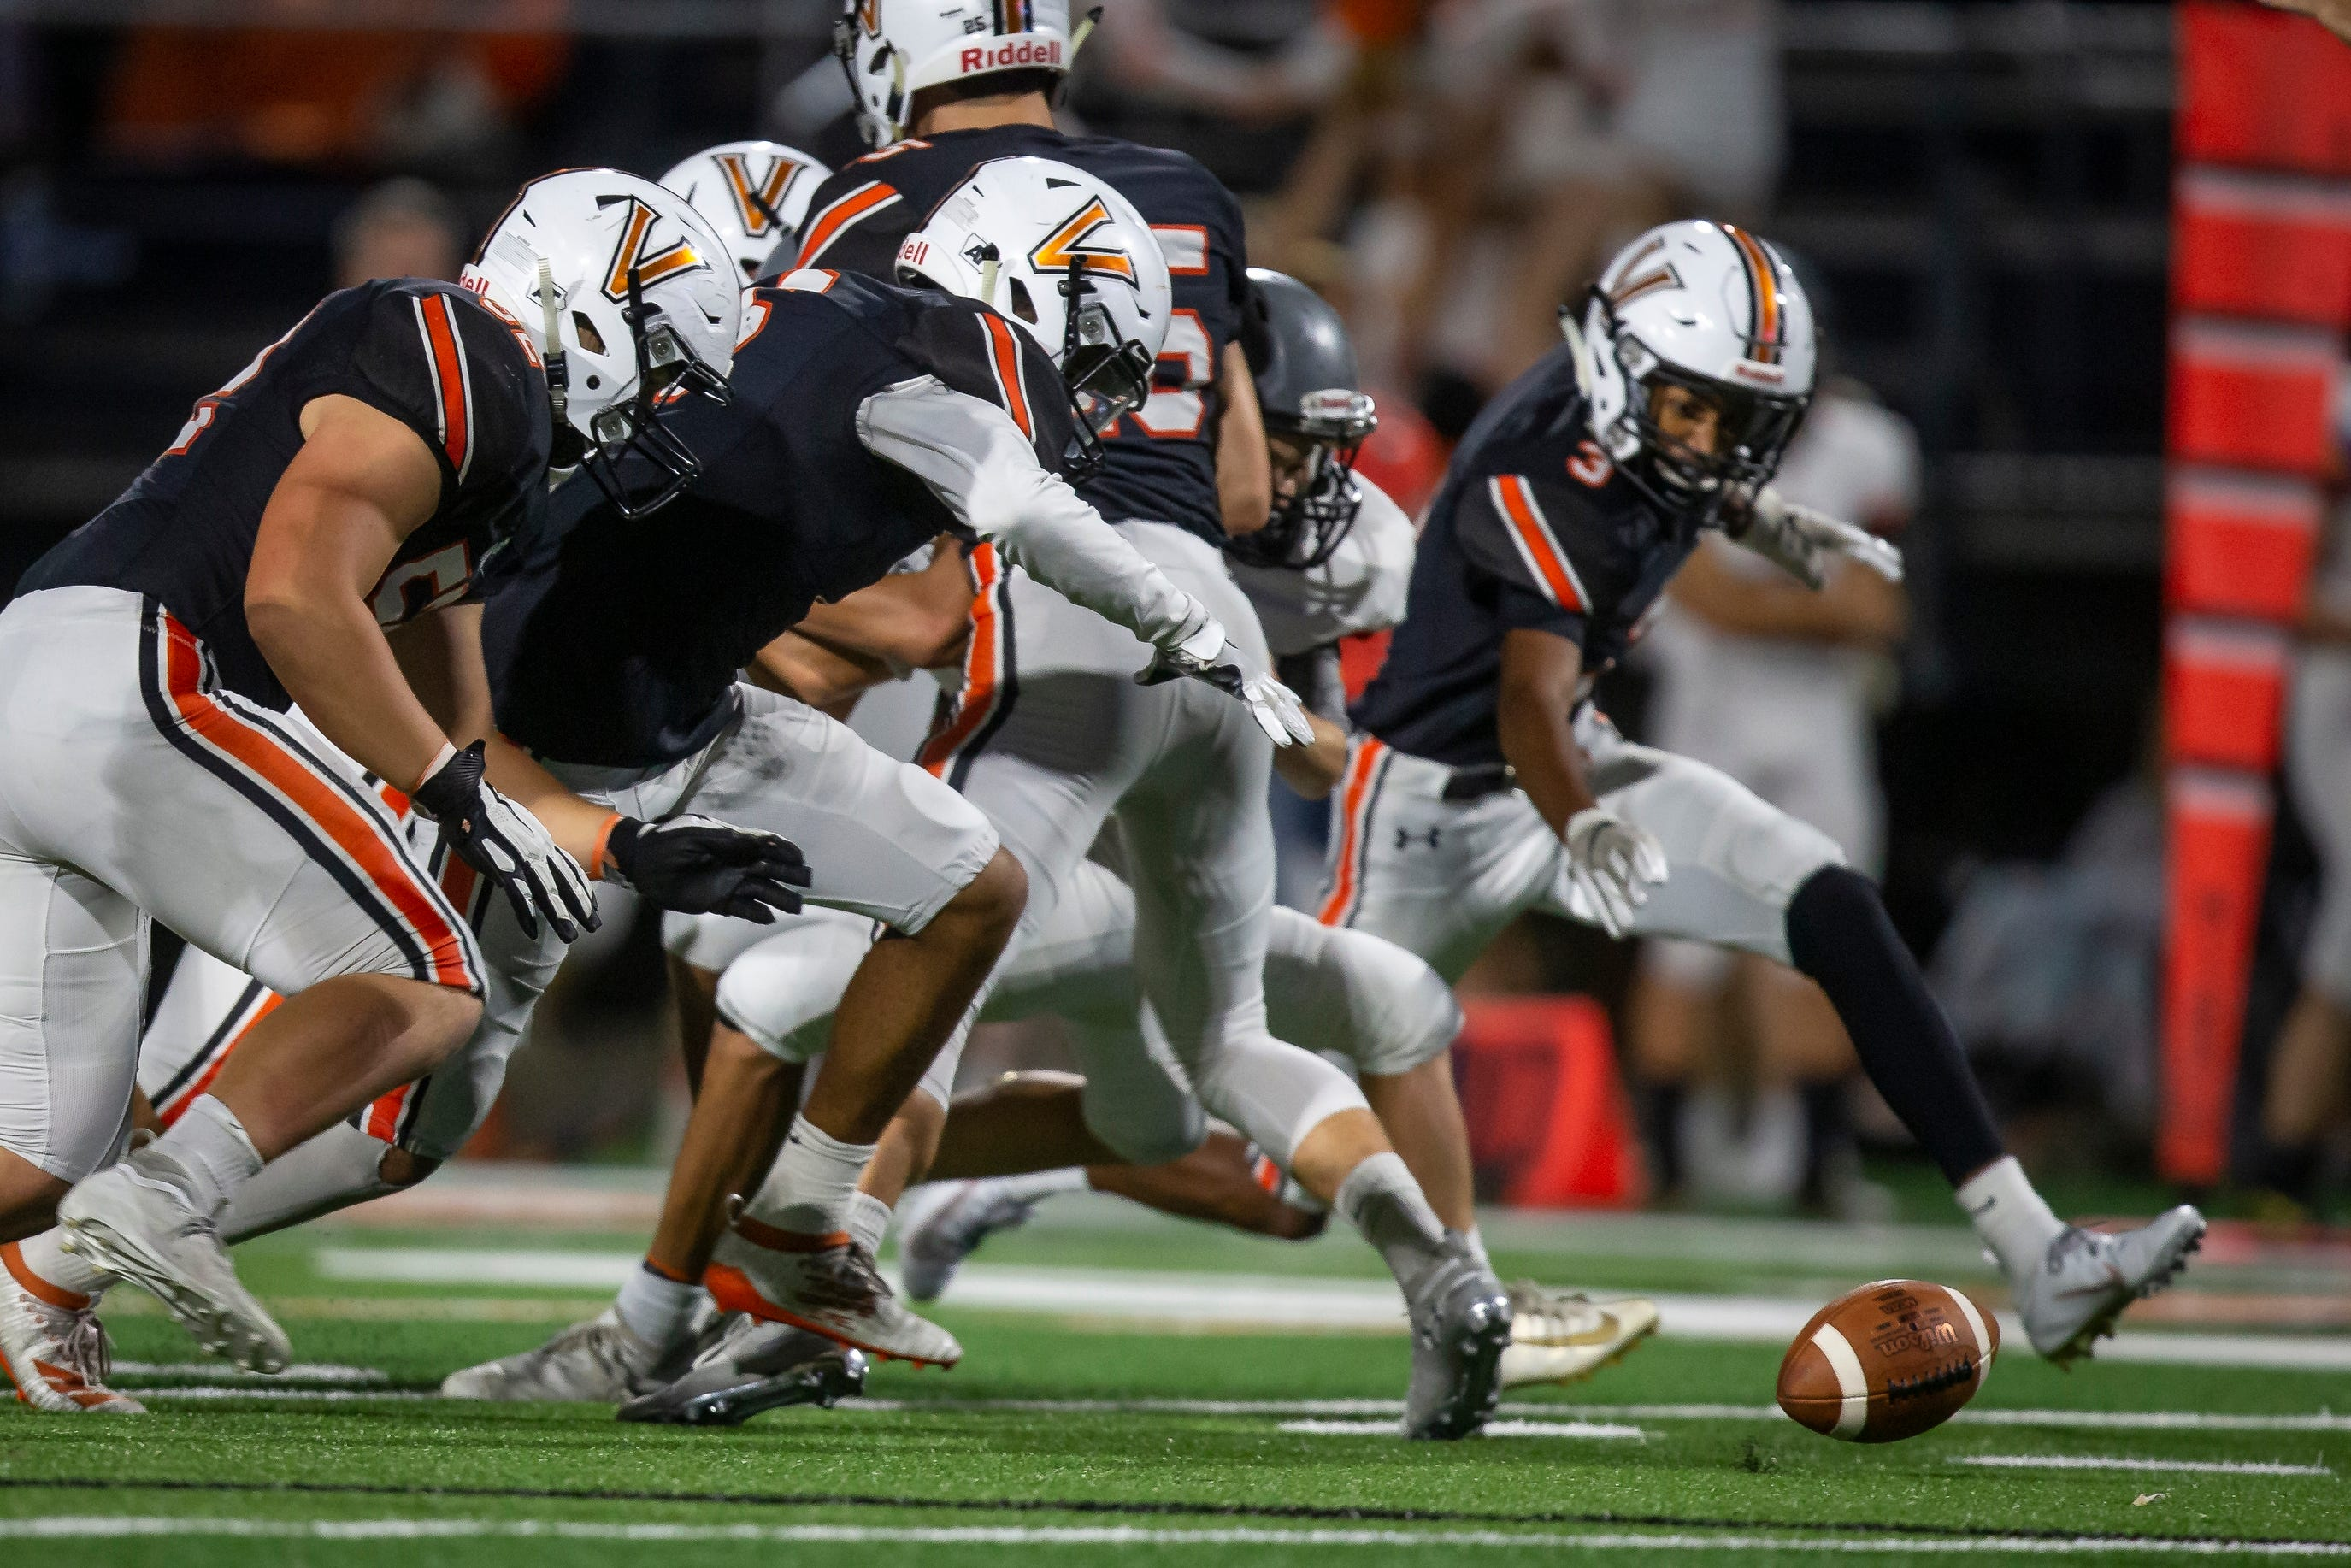 Iowa high school football: Breaking down the Class 4A RPI standings entering Week 7